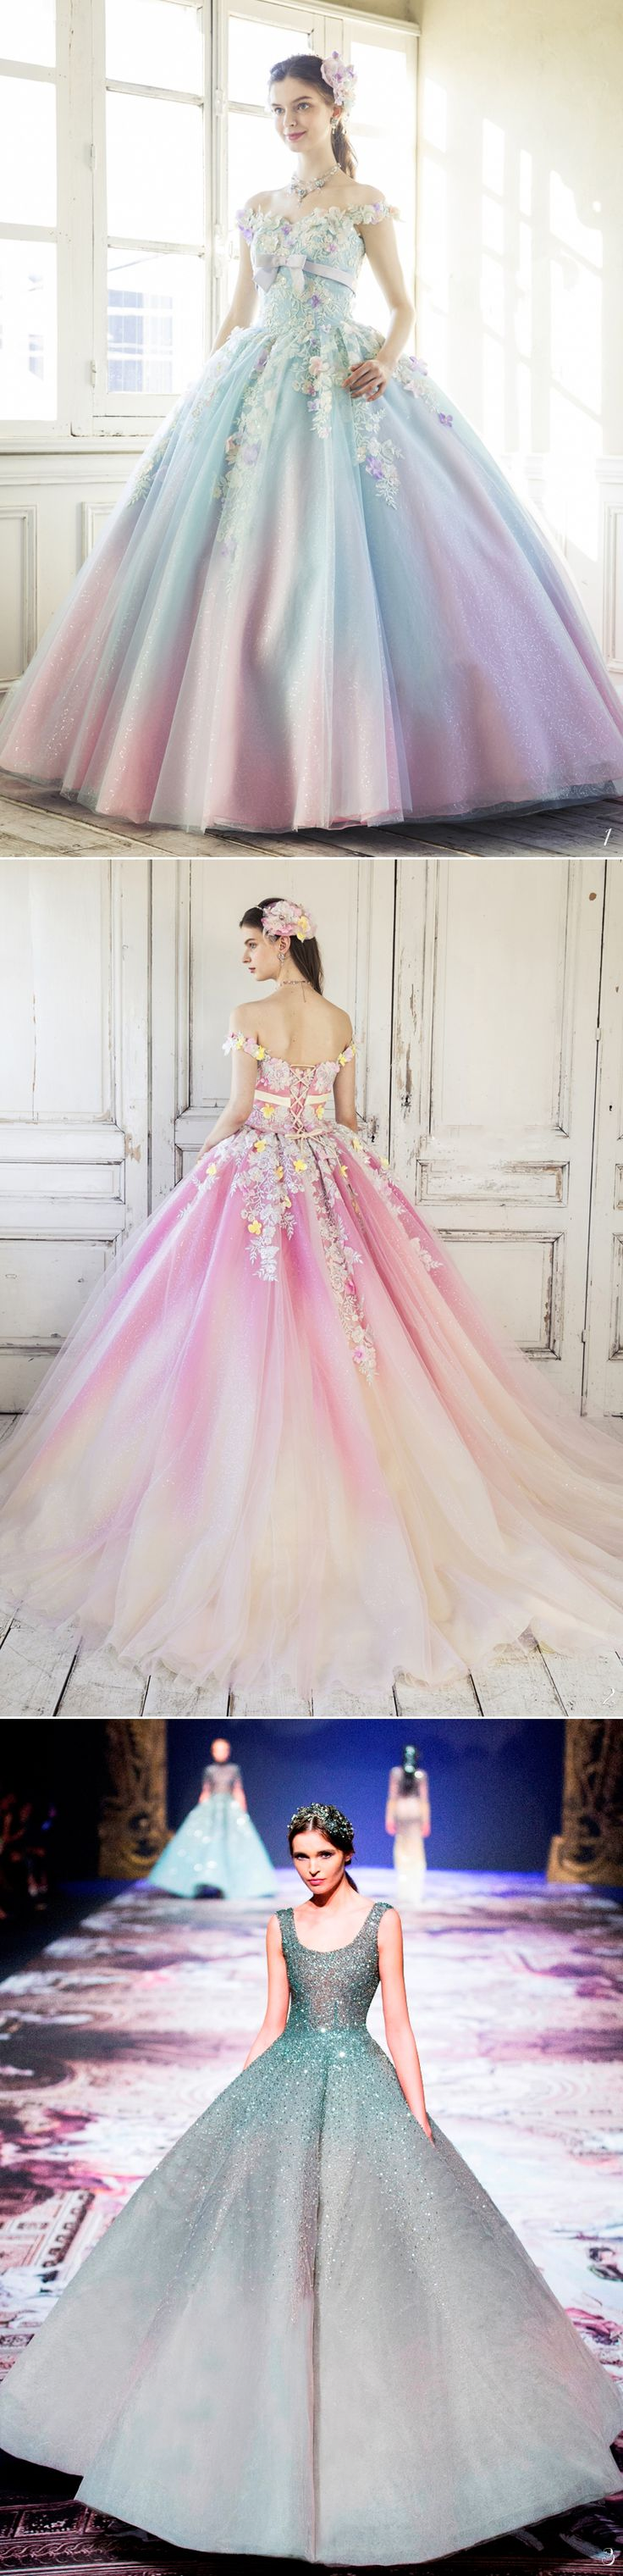 16 Magical Wedding Gowns Fairy Tale Fans Will Adore!